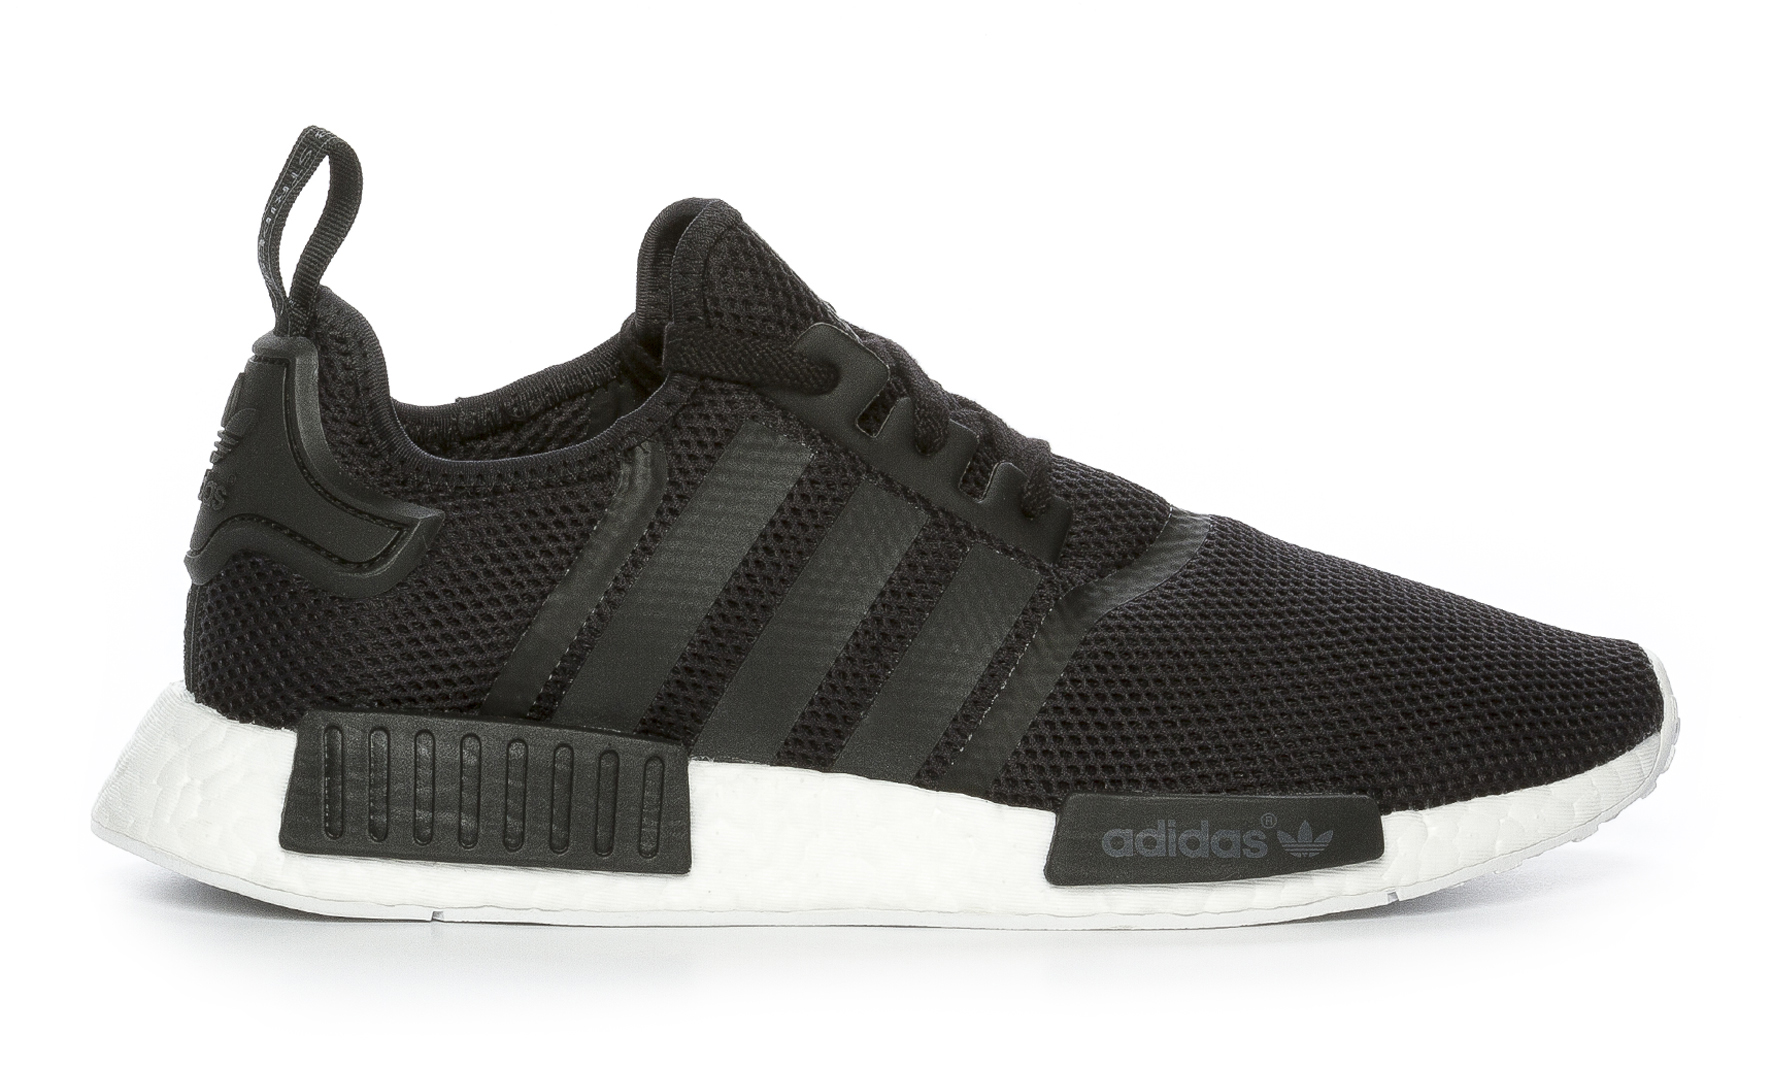 superior quality 248a7 71e8e ... coupon code for adidas nmd runner sort 298310 feetfirst.no ca37a 9ec50